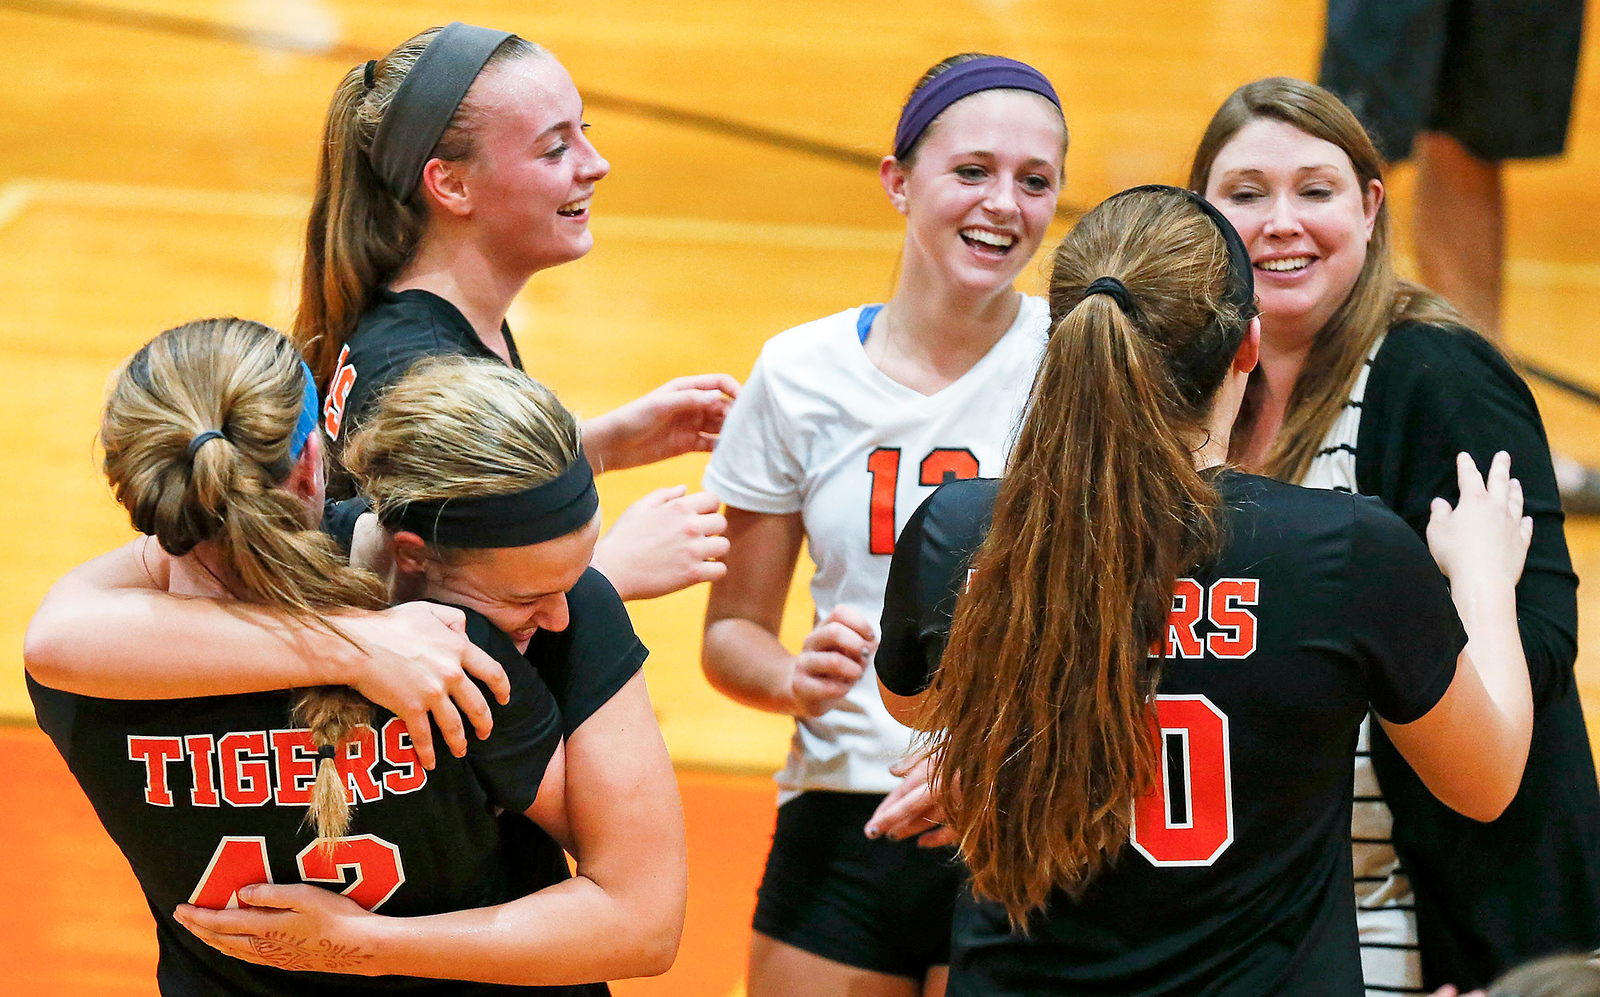 Madde Blake (35) from Crystal Lake Central hugs Megan Kelly (42) from Crystal Lake Central after they beat Huntley in 2 games at Crystal Lake Central High School on Thursday, September 21, 2017 in Crystal Lake, Illinois. The Tigers won the set in 2 games; 25-20, 25-23. John Konstantaras photo for Shaw Media